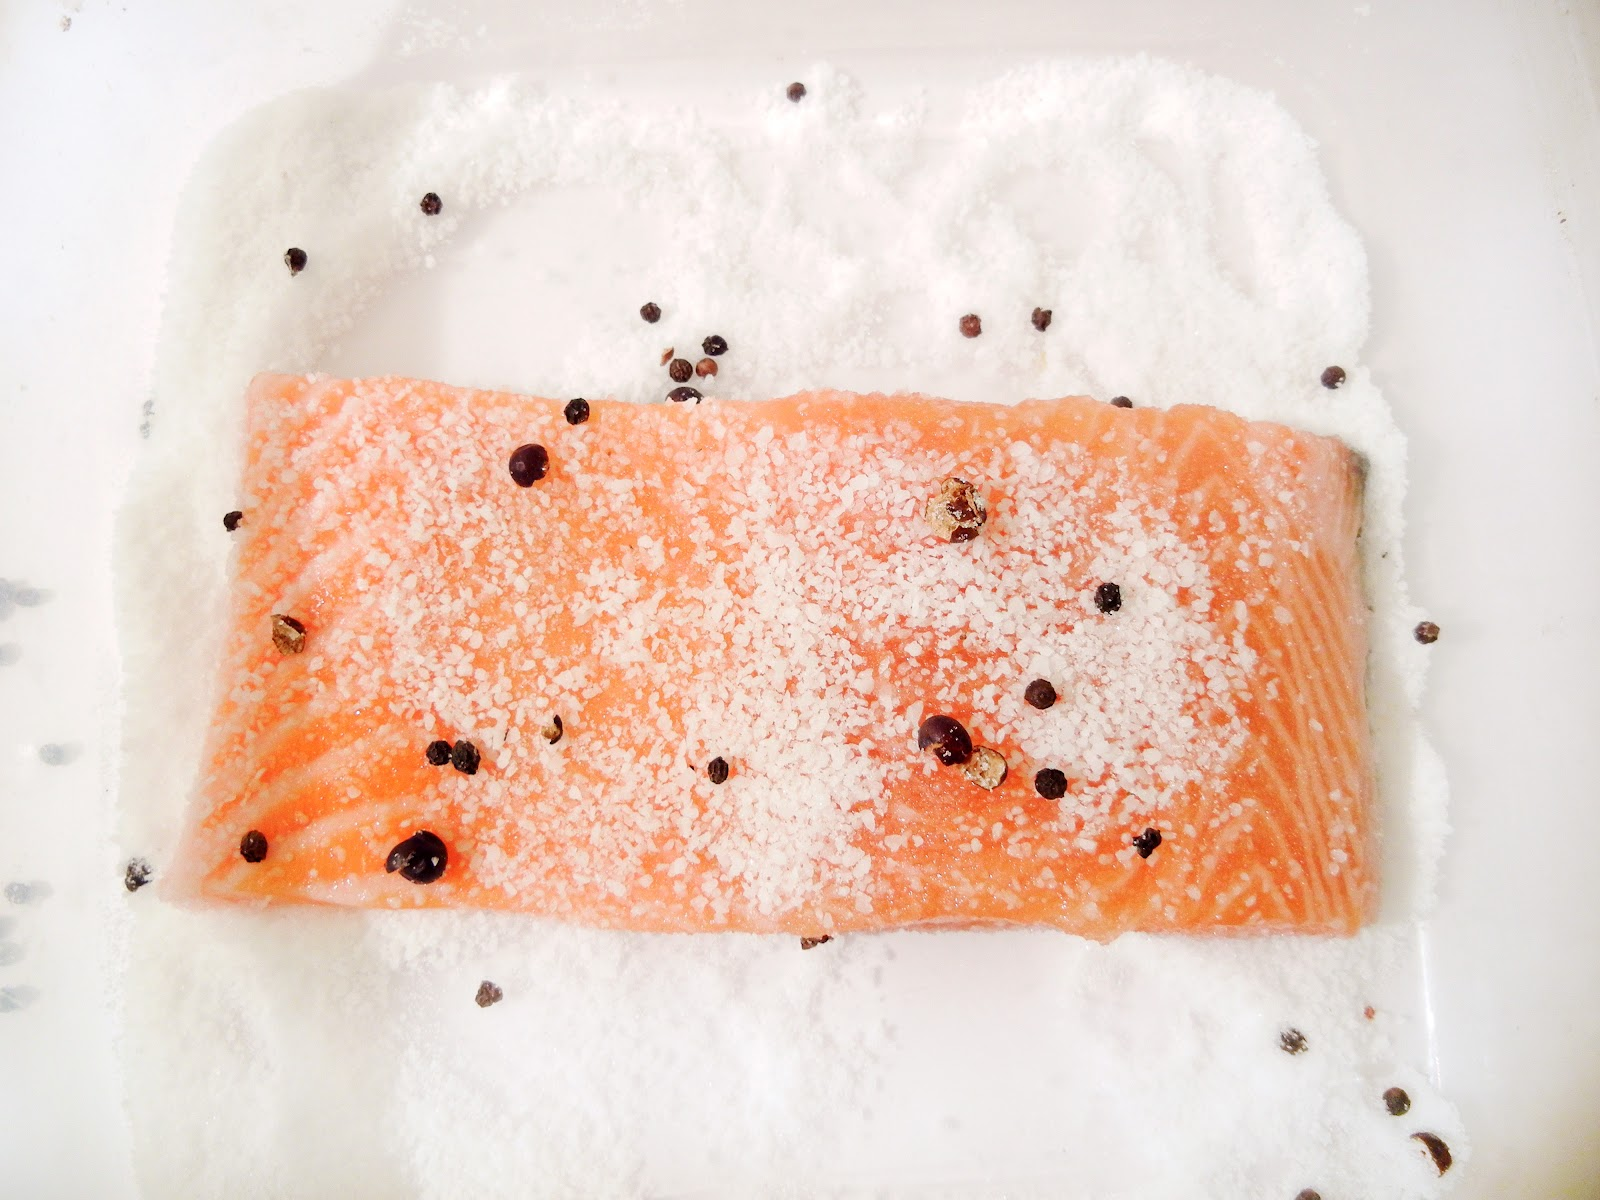 Best Wood Chips Smoking Salmon : Of the salmon and then cover with plastic wrap leave to